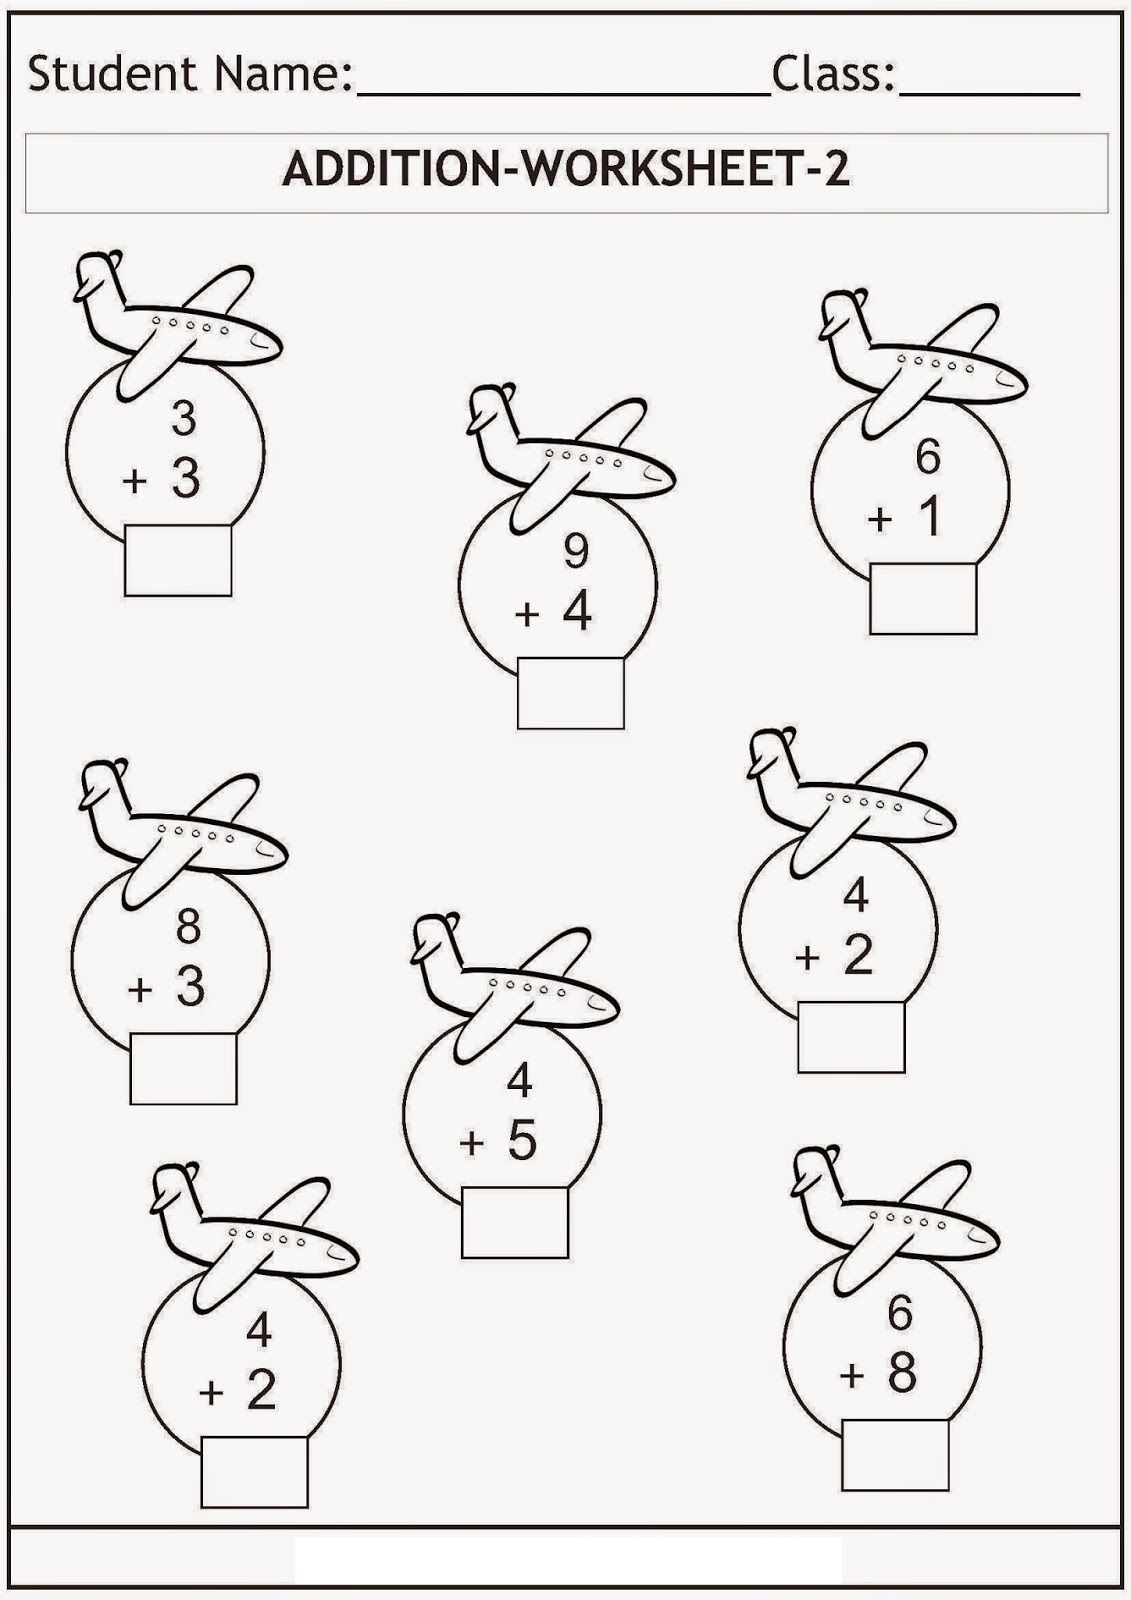 Printable Worksheets For Grade 1